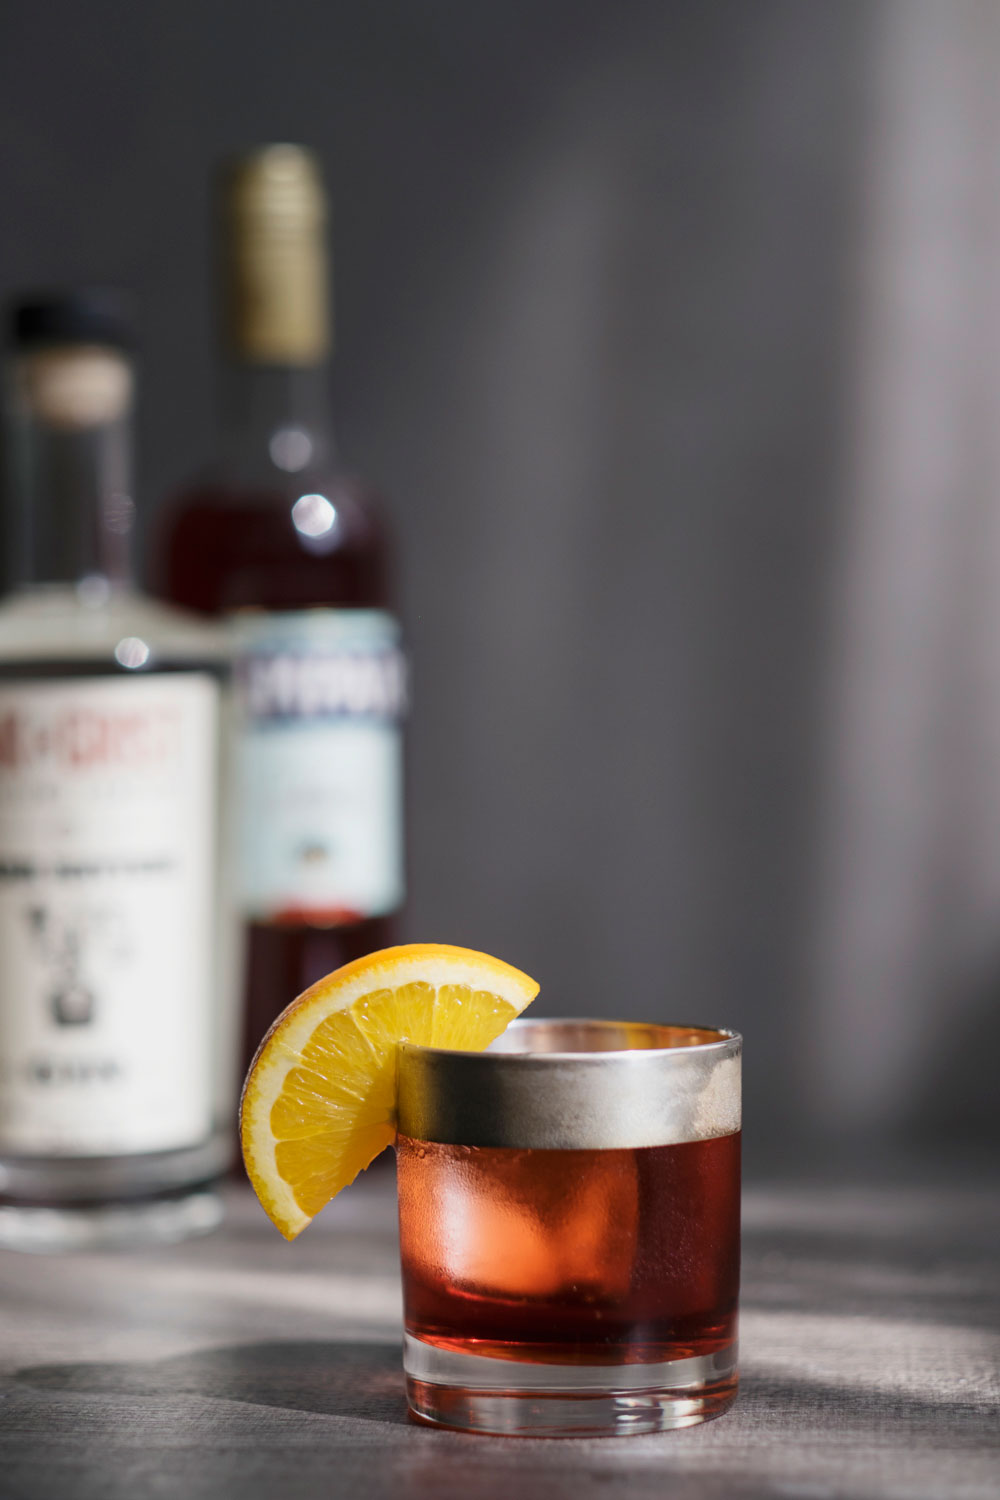 Nicole McConville Photography | Cocktail Photographer